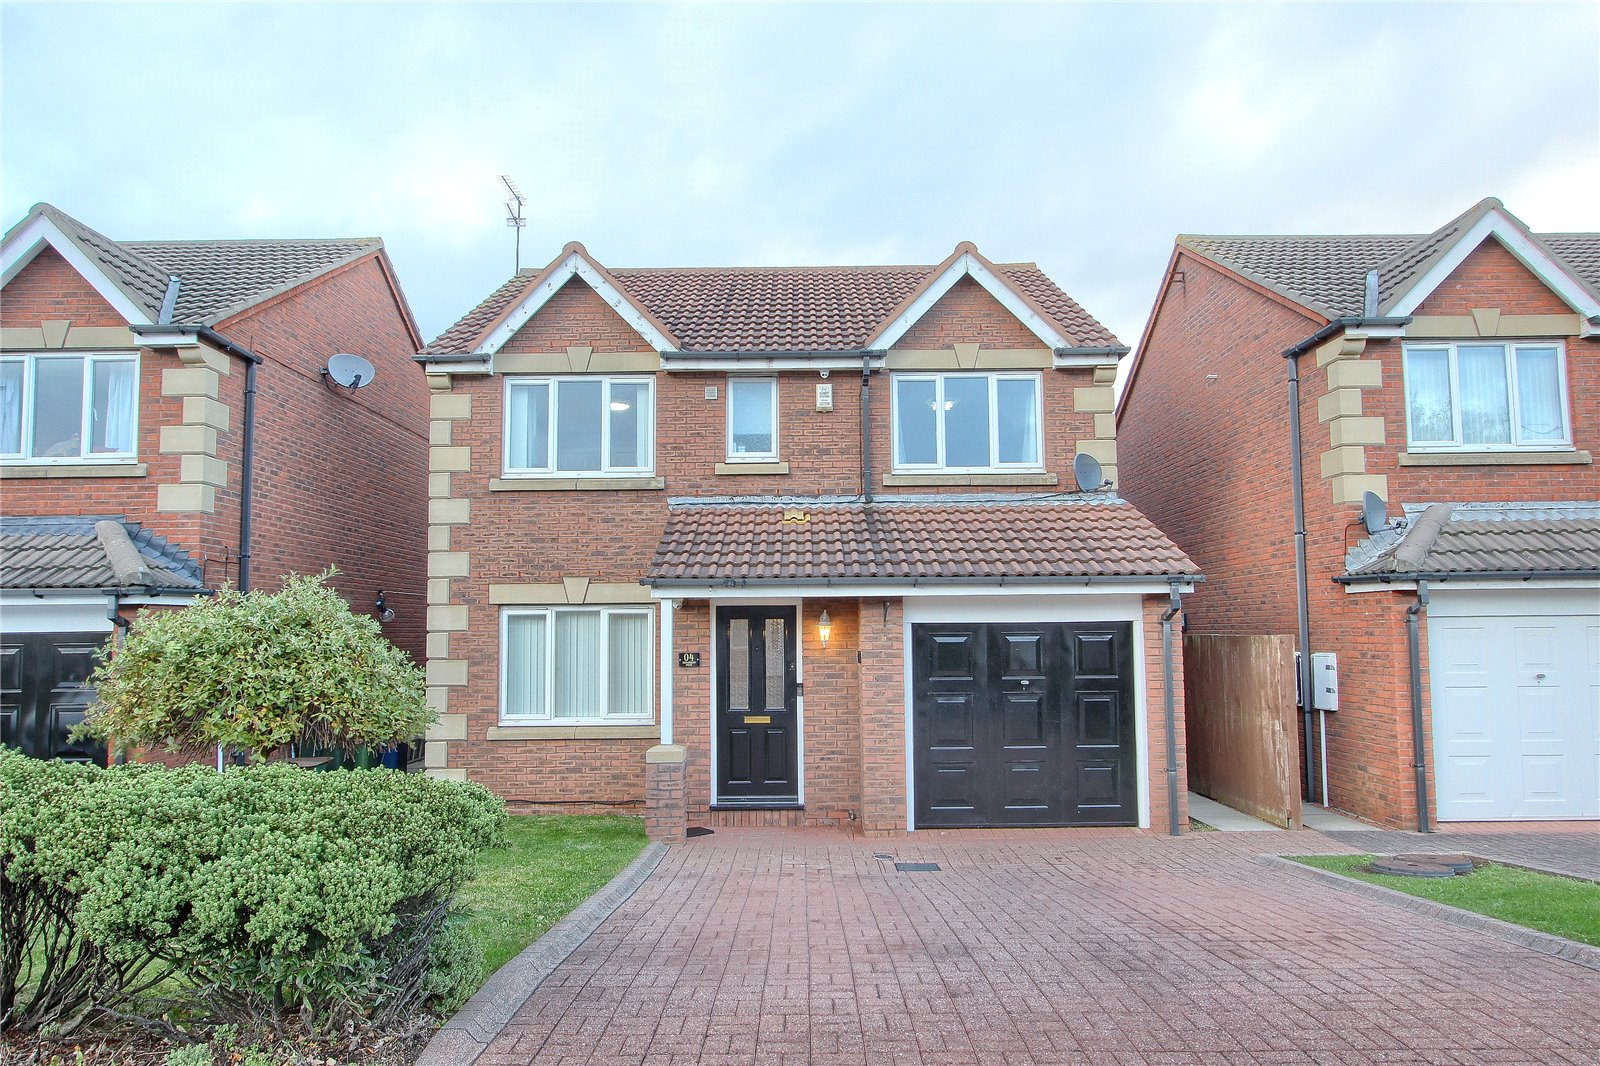 4 bed house for sale in Trevarrian Drive, Redcar  - Property Image 1